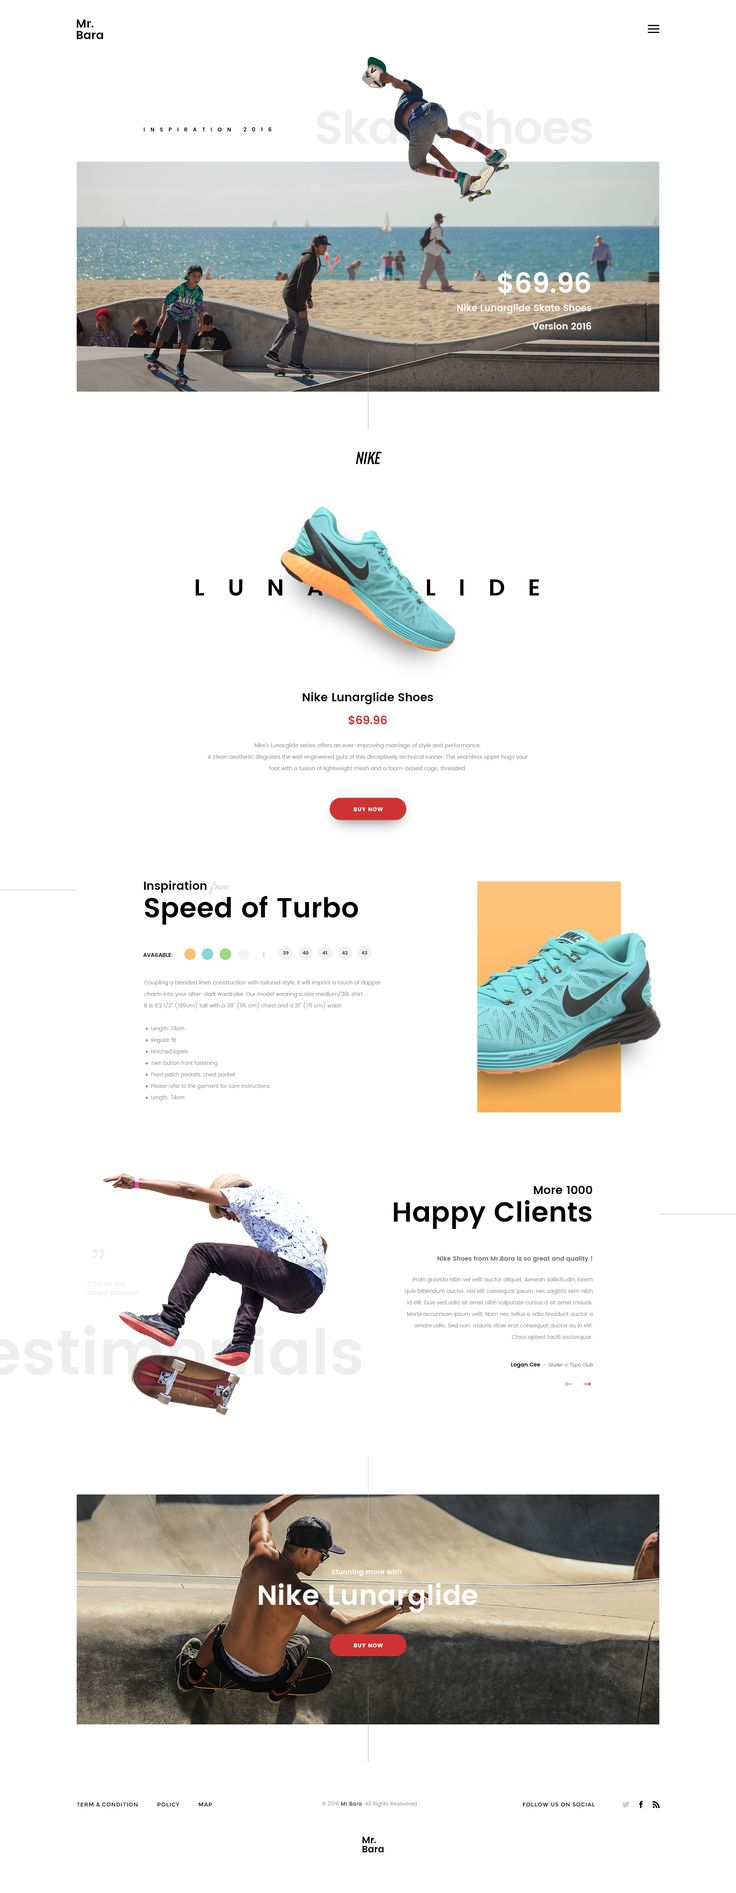 Home single productMr.Bara | Home Shoes Concept by C-Knightz Art in Mr.Bara - Creative Ecommerce PSD Template